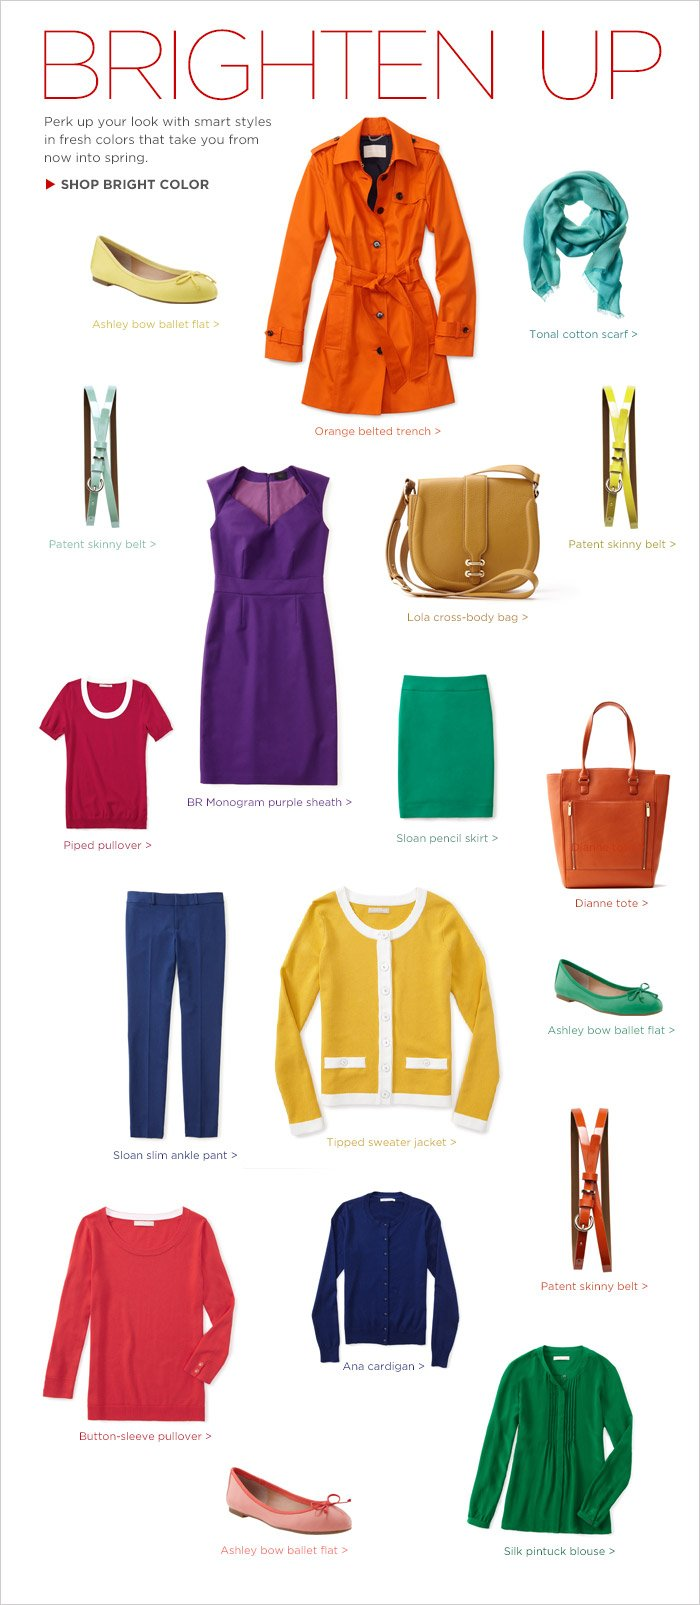 BRIGHTEN UP | Perk up your look with smart styles in fresh colors that take you from now into spring | SHOP BRIGHT COLOR